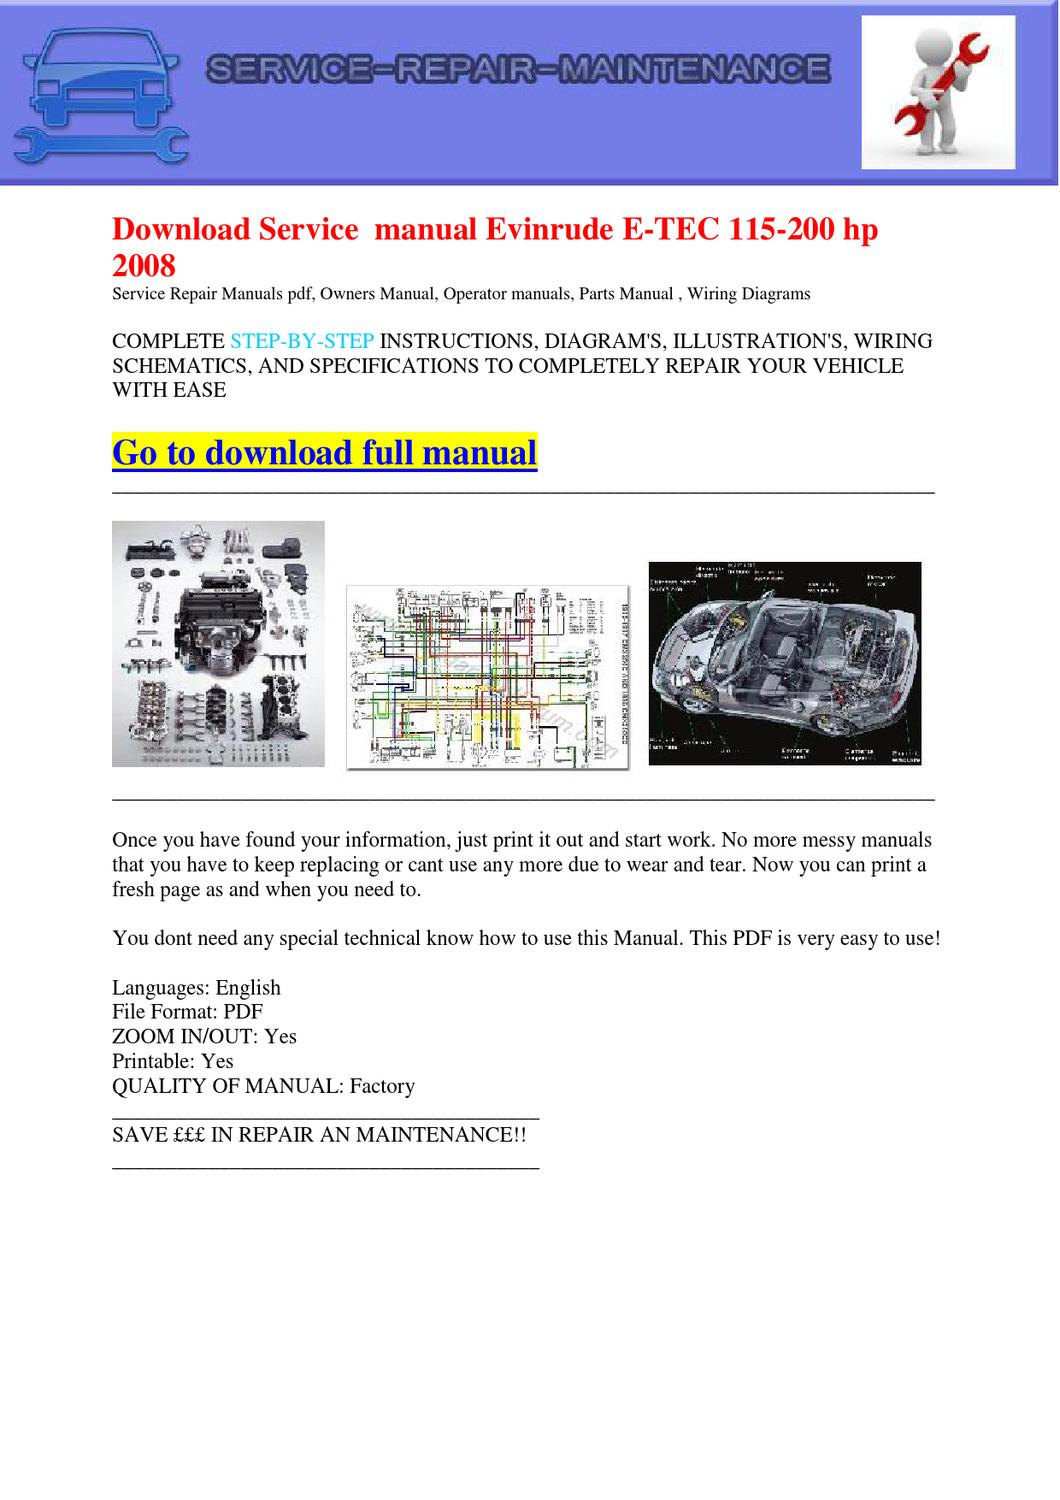 evinrude etec 115 wiring diagram home electrical circuit old house download service manual e tec 200 hp 2008 by